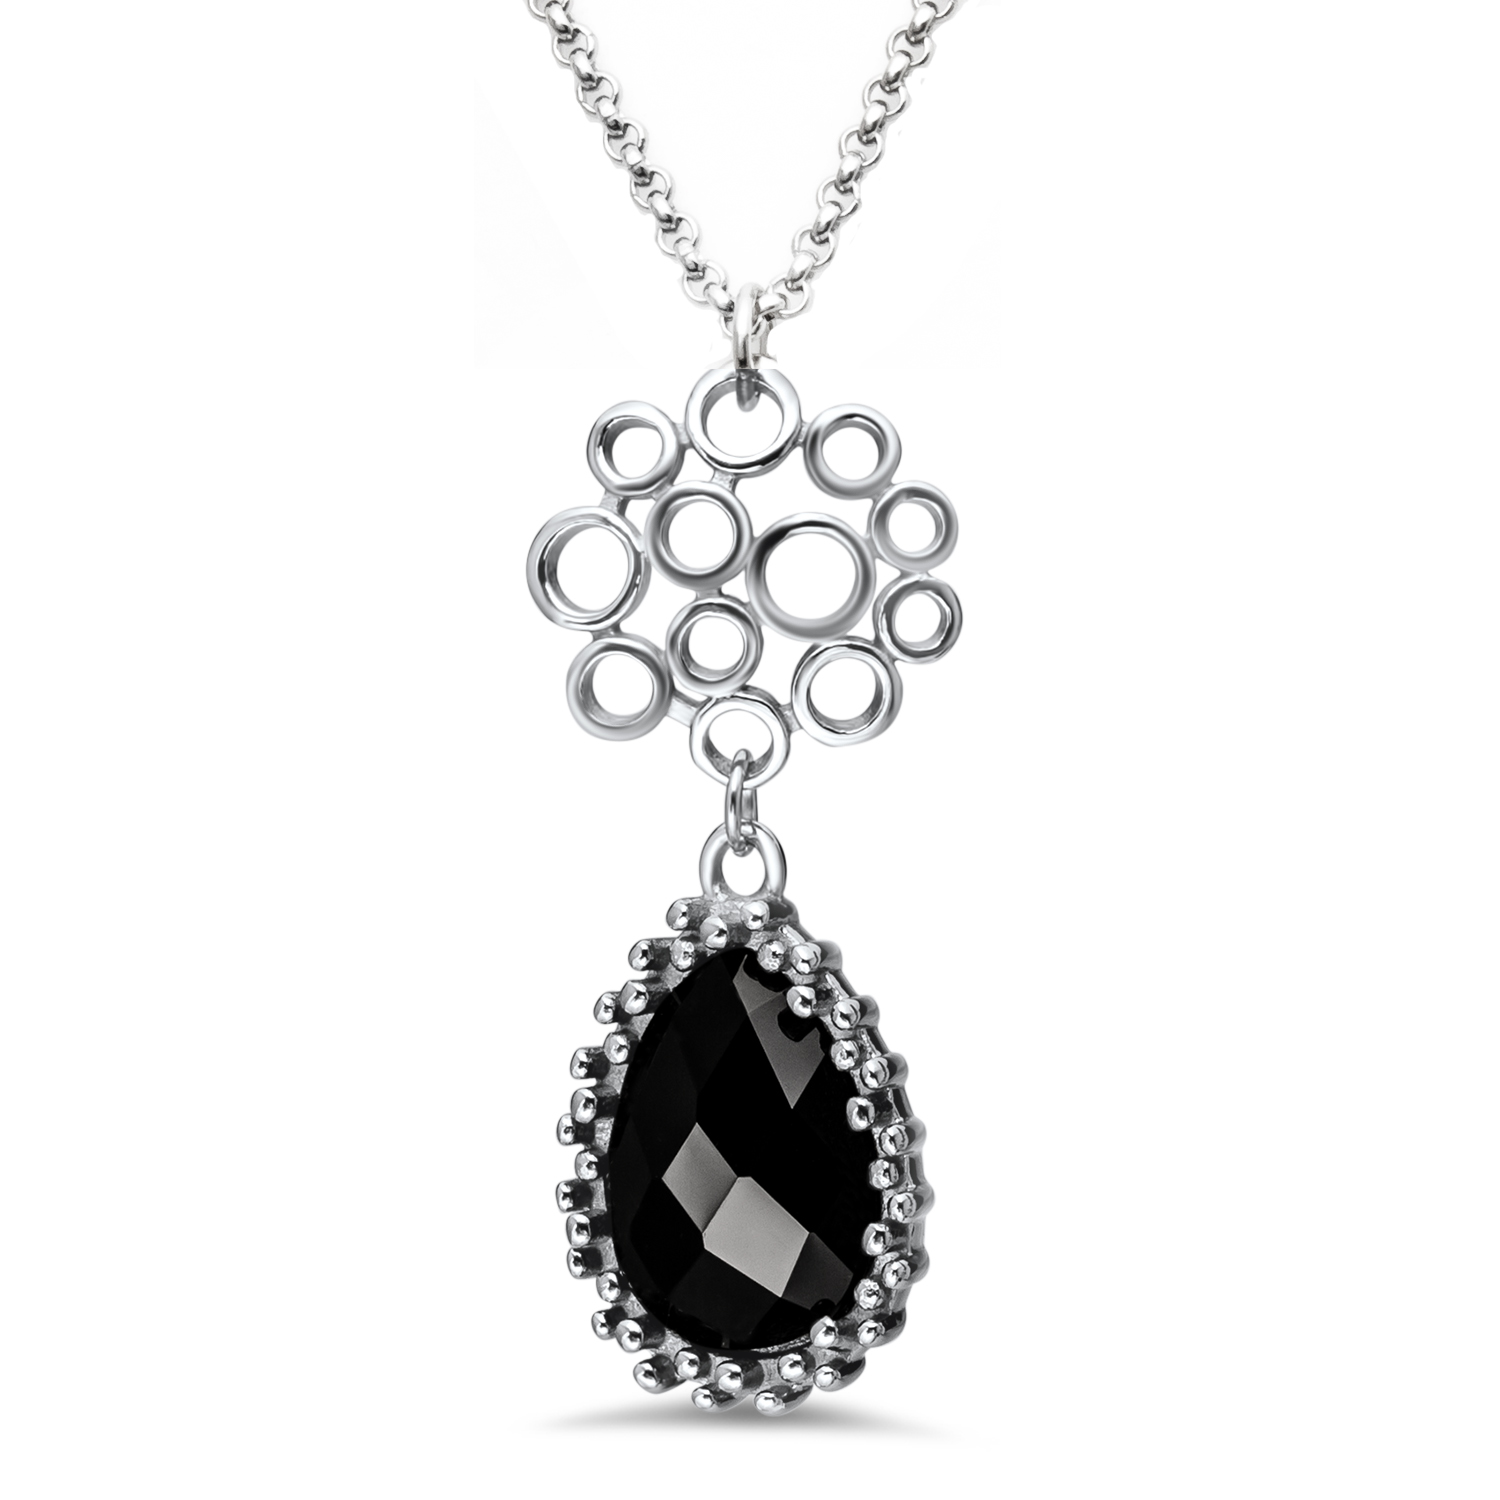 Stainless Steel Polished Circle & Teardrop Onyx Necklace